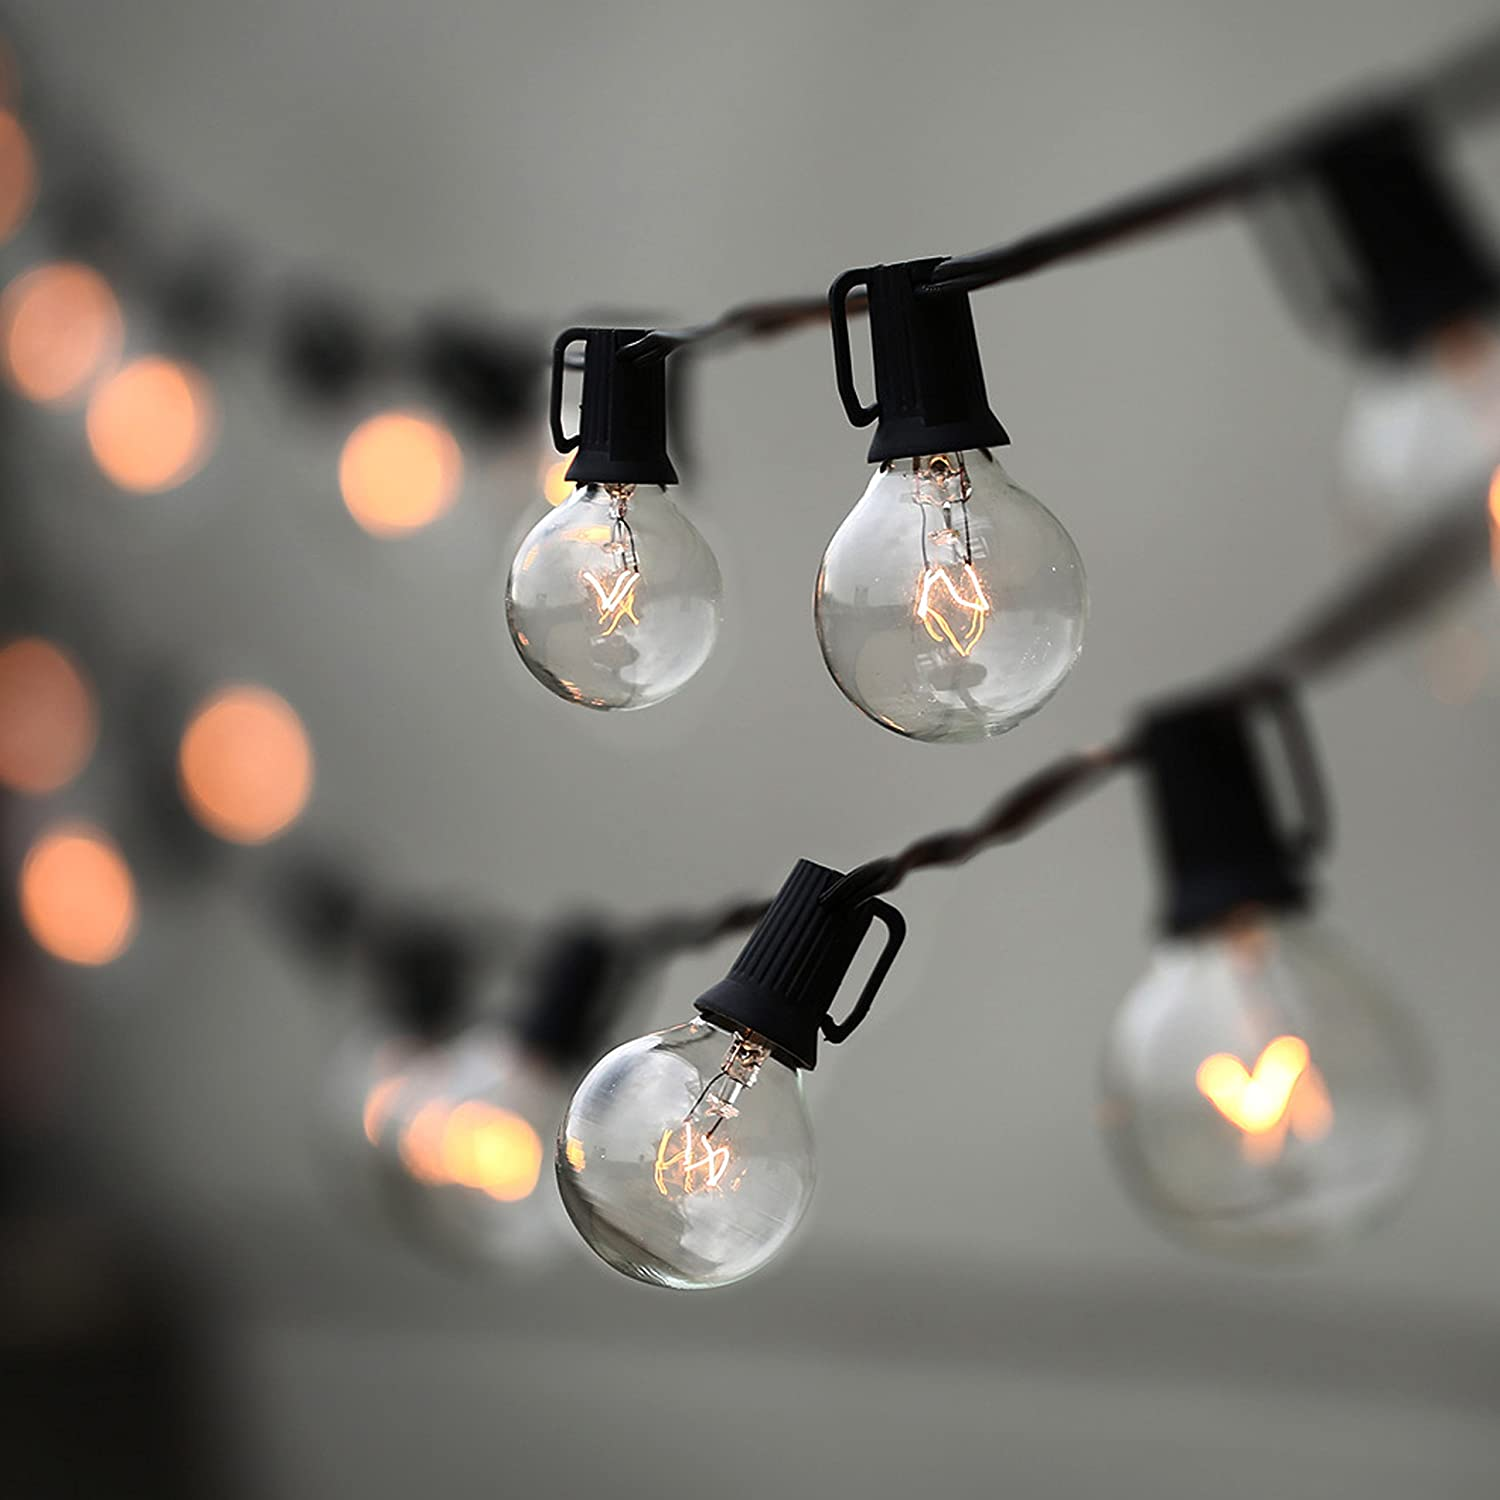 String lights bedroom tiny bulbs electric - Amazon Com Lampat String Lights Vintage Backyard Patio Lights With 25 Clear Globe Bulbs Ul Listed For Indoor Outdoor Use Globe Wedding Light String